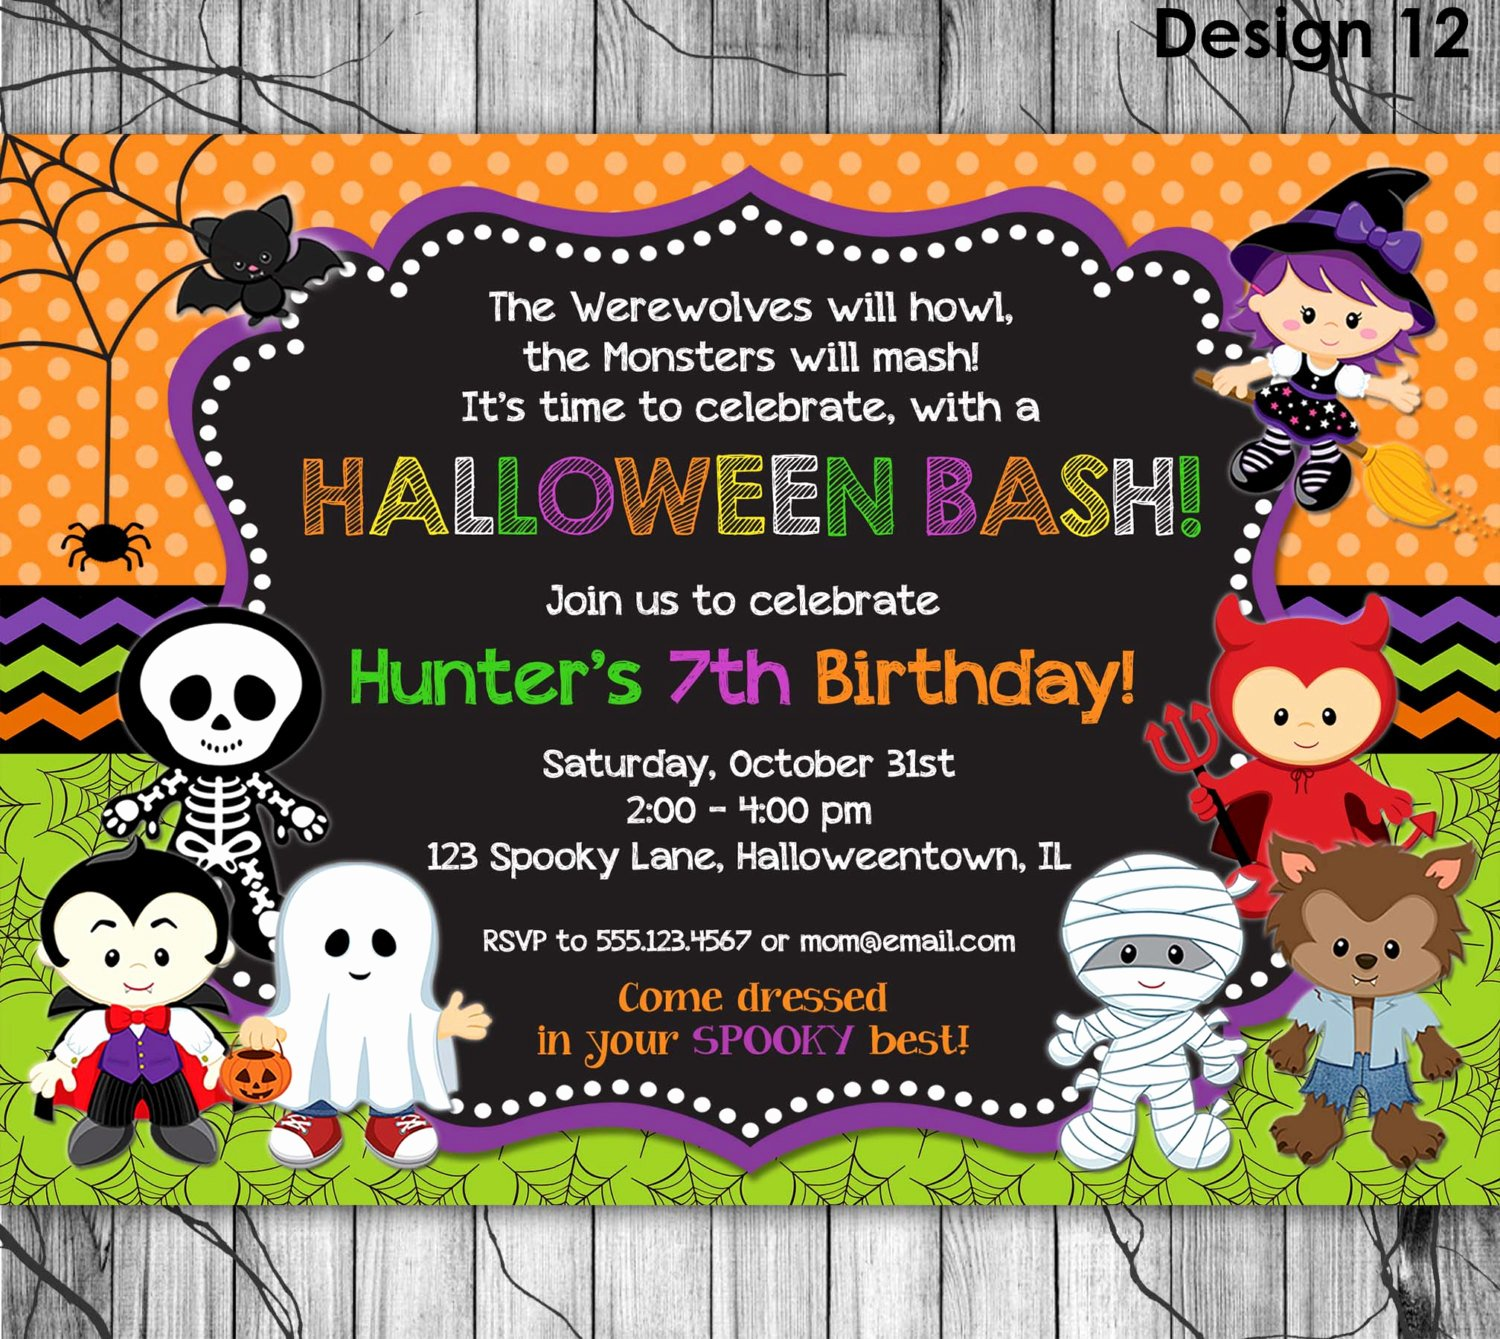 Halloween Party Invitations Template Beautiful Halloween Birthday Invitation Printable Kids Halloween Party